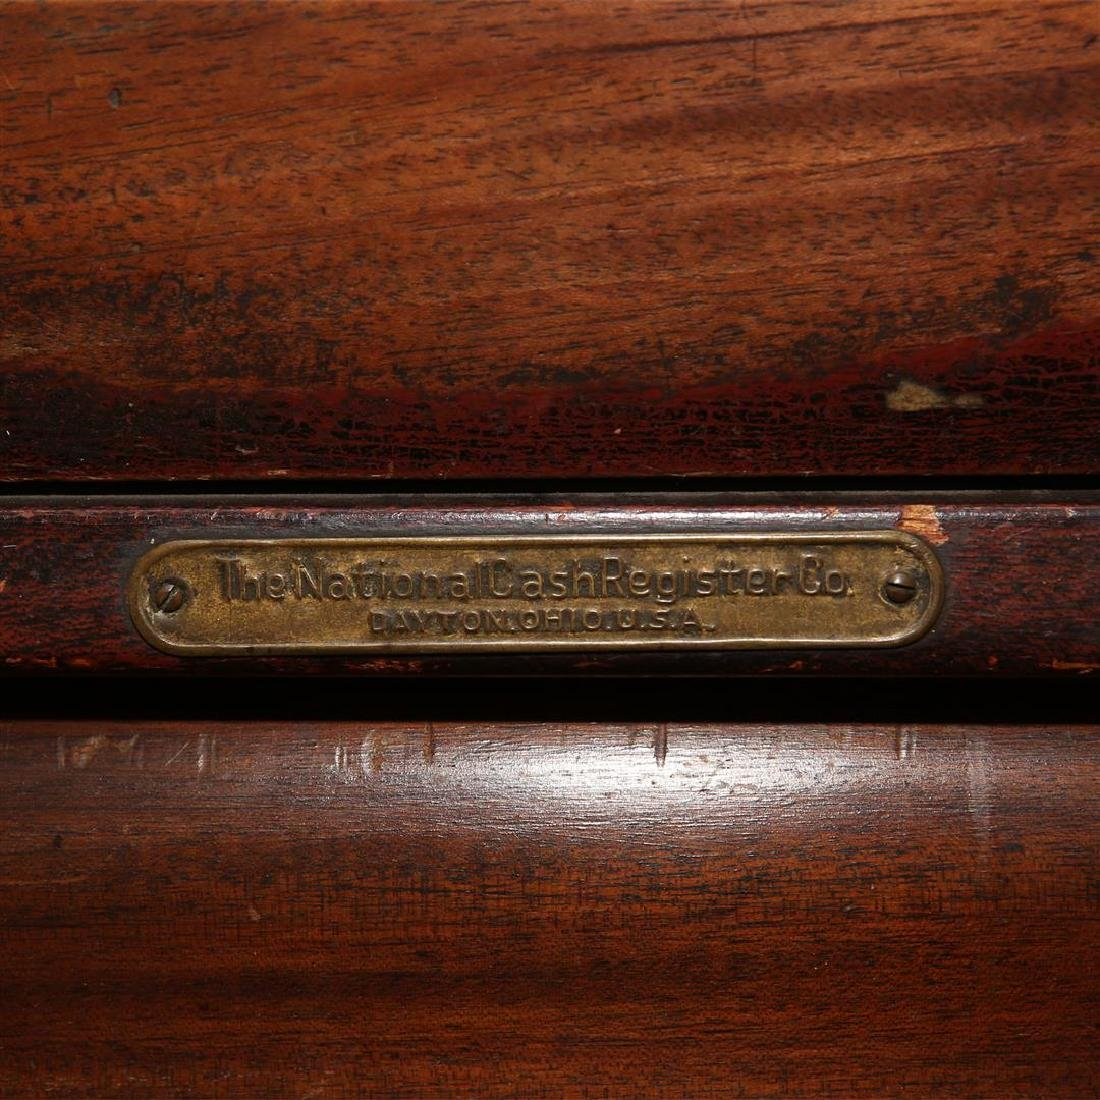 The National Cash Register Co. Wooden Cash Register - 6